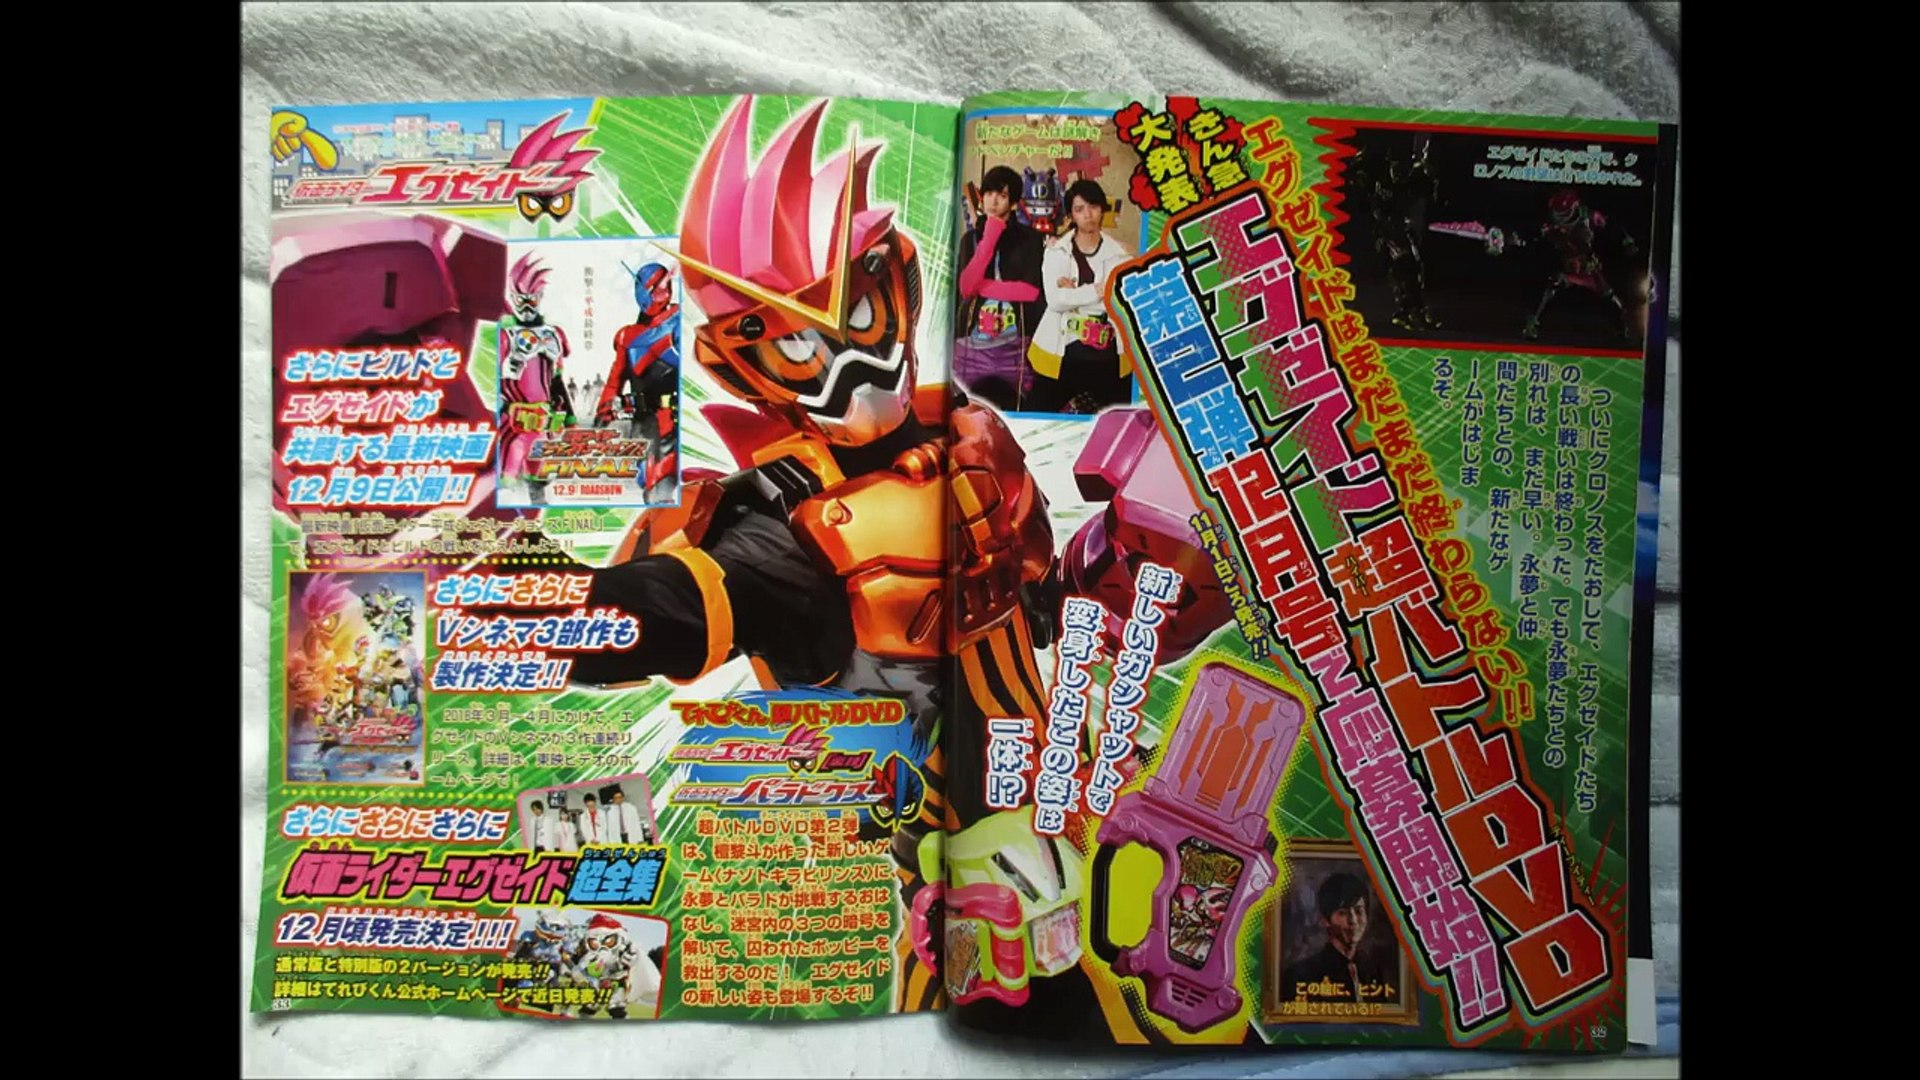 [Urawaza] Para DX Scans: Ex Aid Fighter Gamer & Knock Out Fighter 2 Gashat